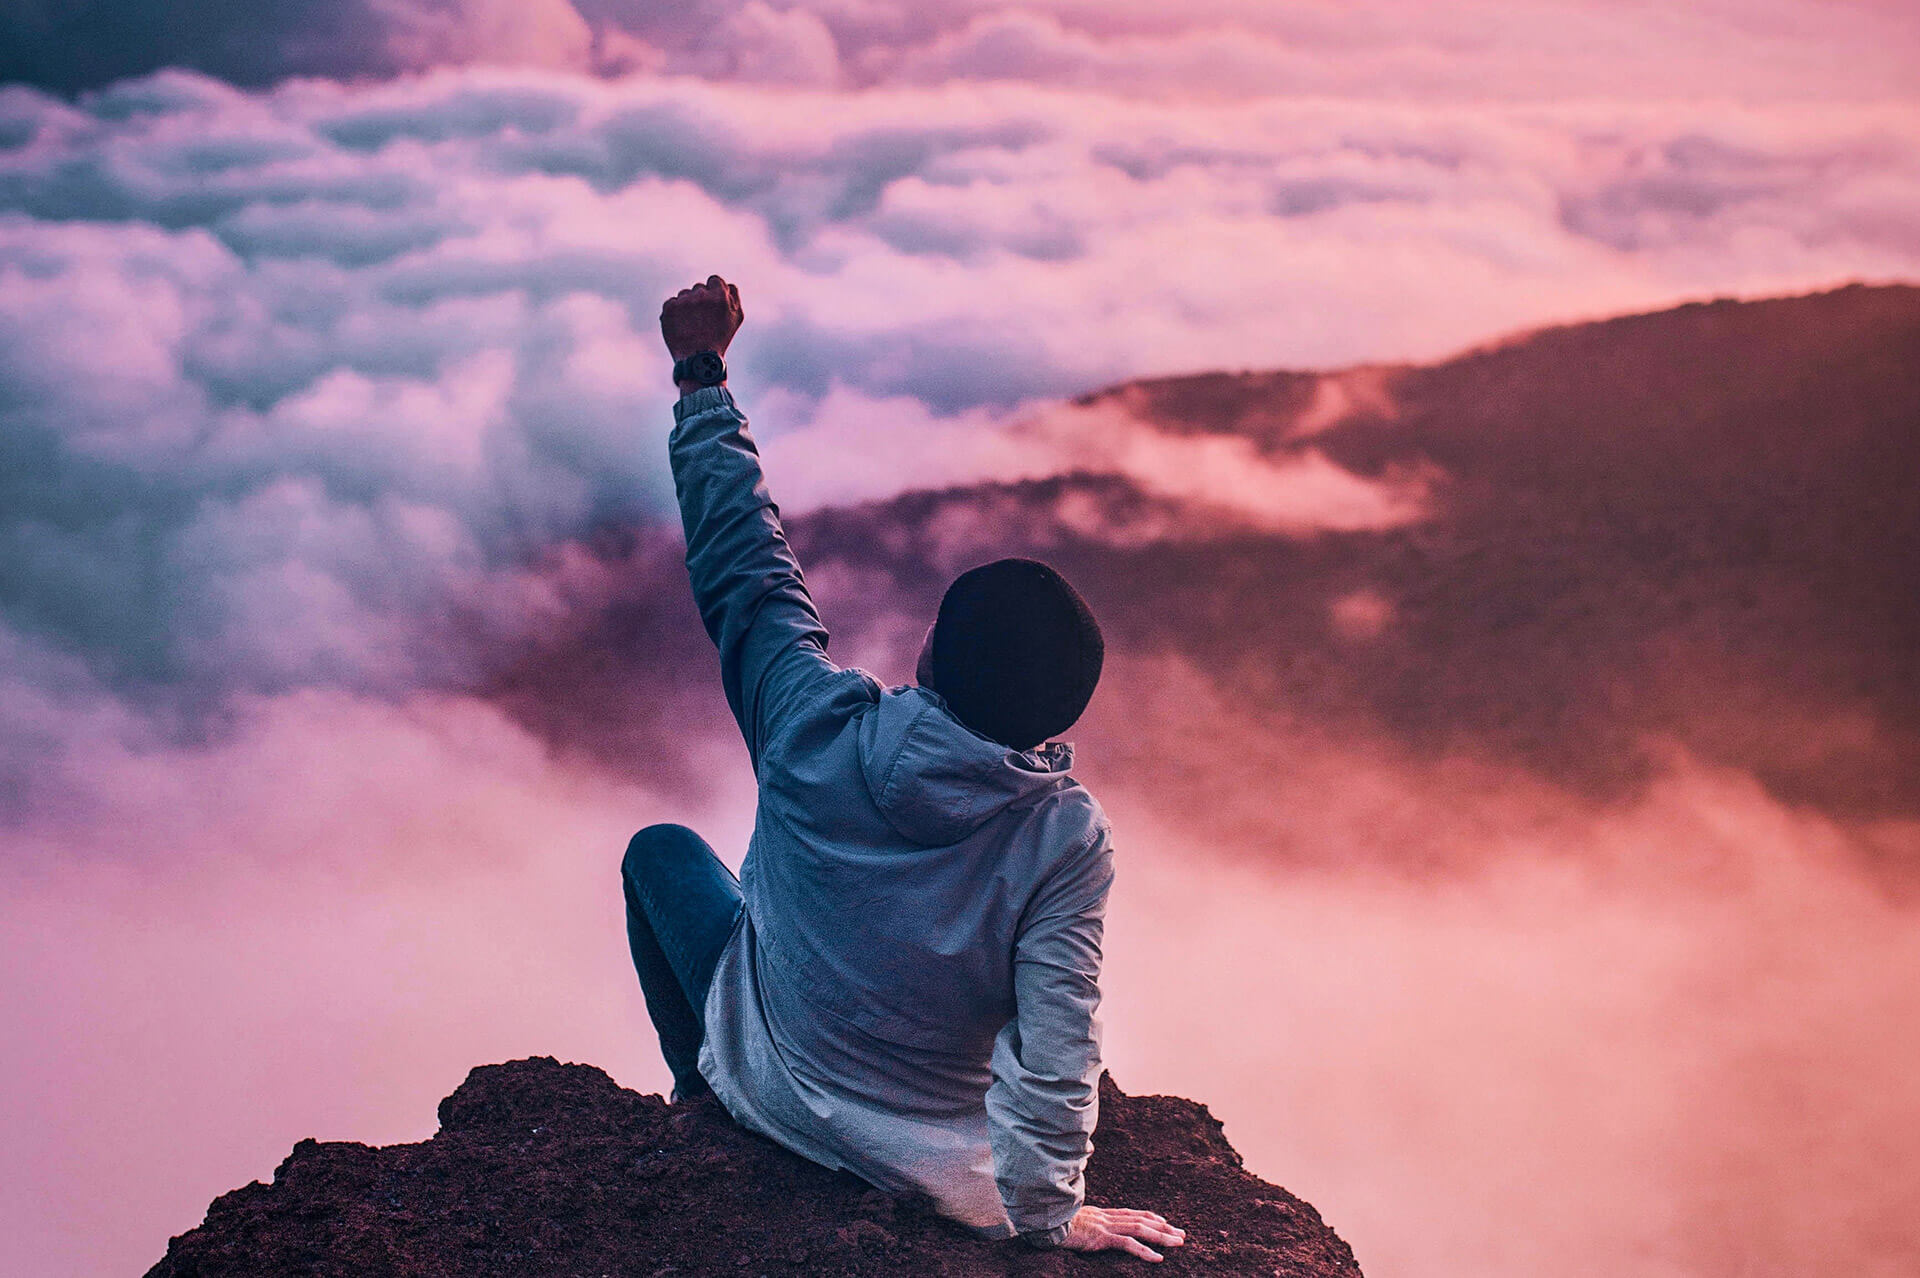 Person at the top of mountain with fist in the air